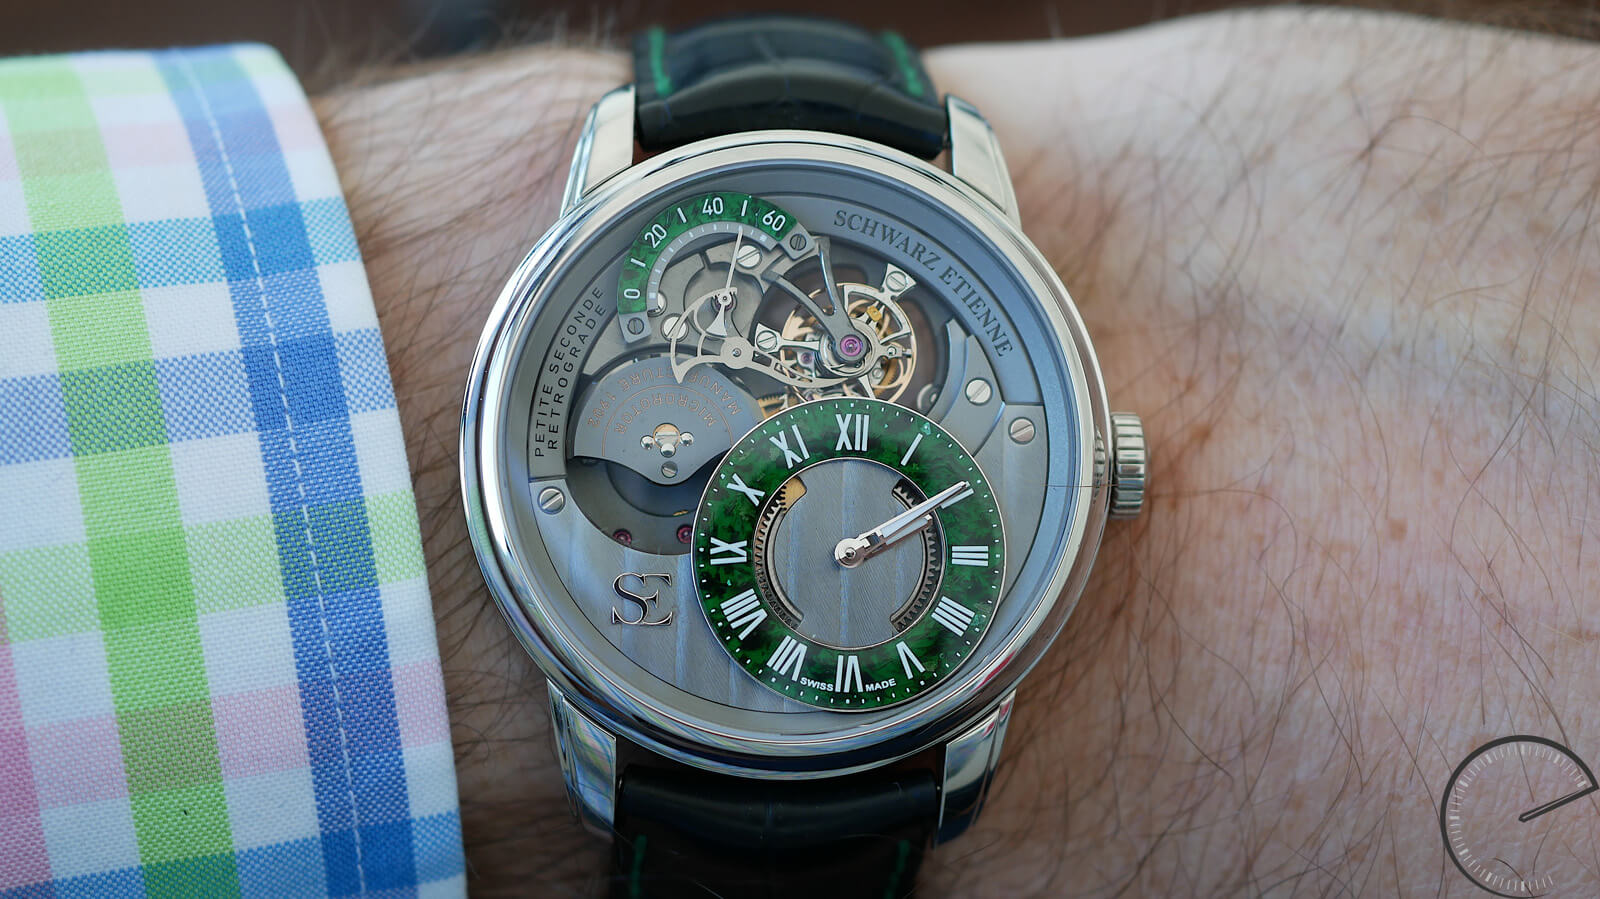 Schwarz Etienne La Chaux-de-Fonds Petite Seconde Rétrograde Tourbillon - timepiece with reversible tourbillon and retrograde small seconds